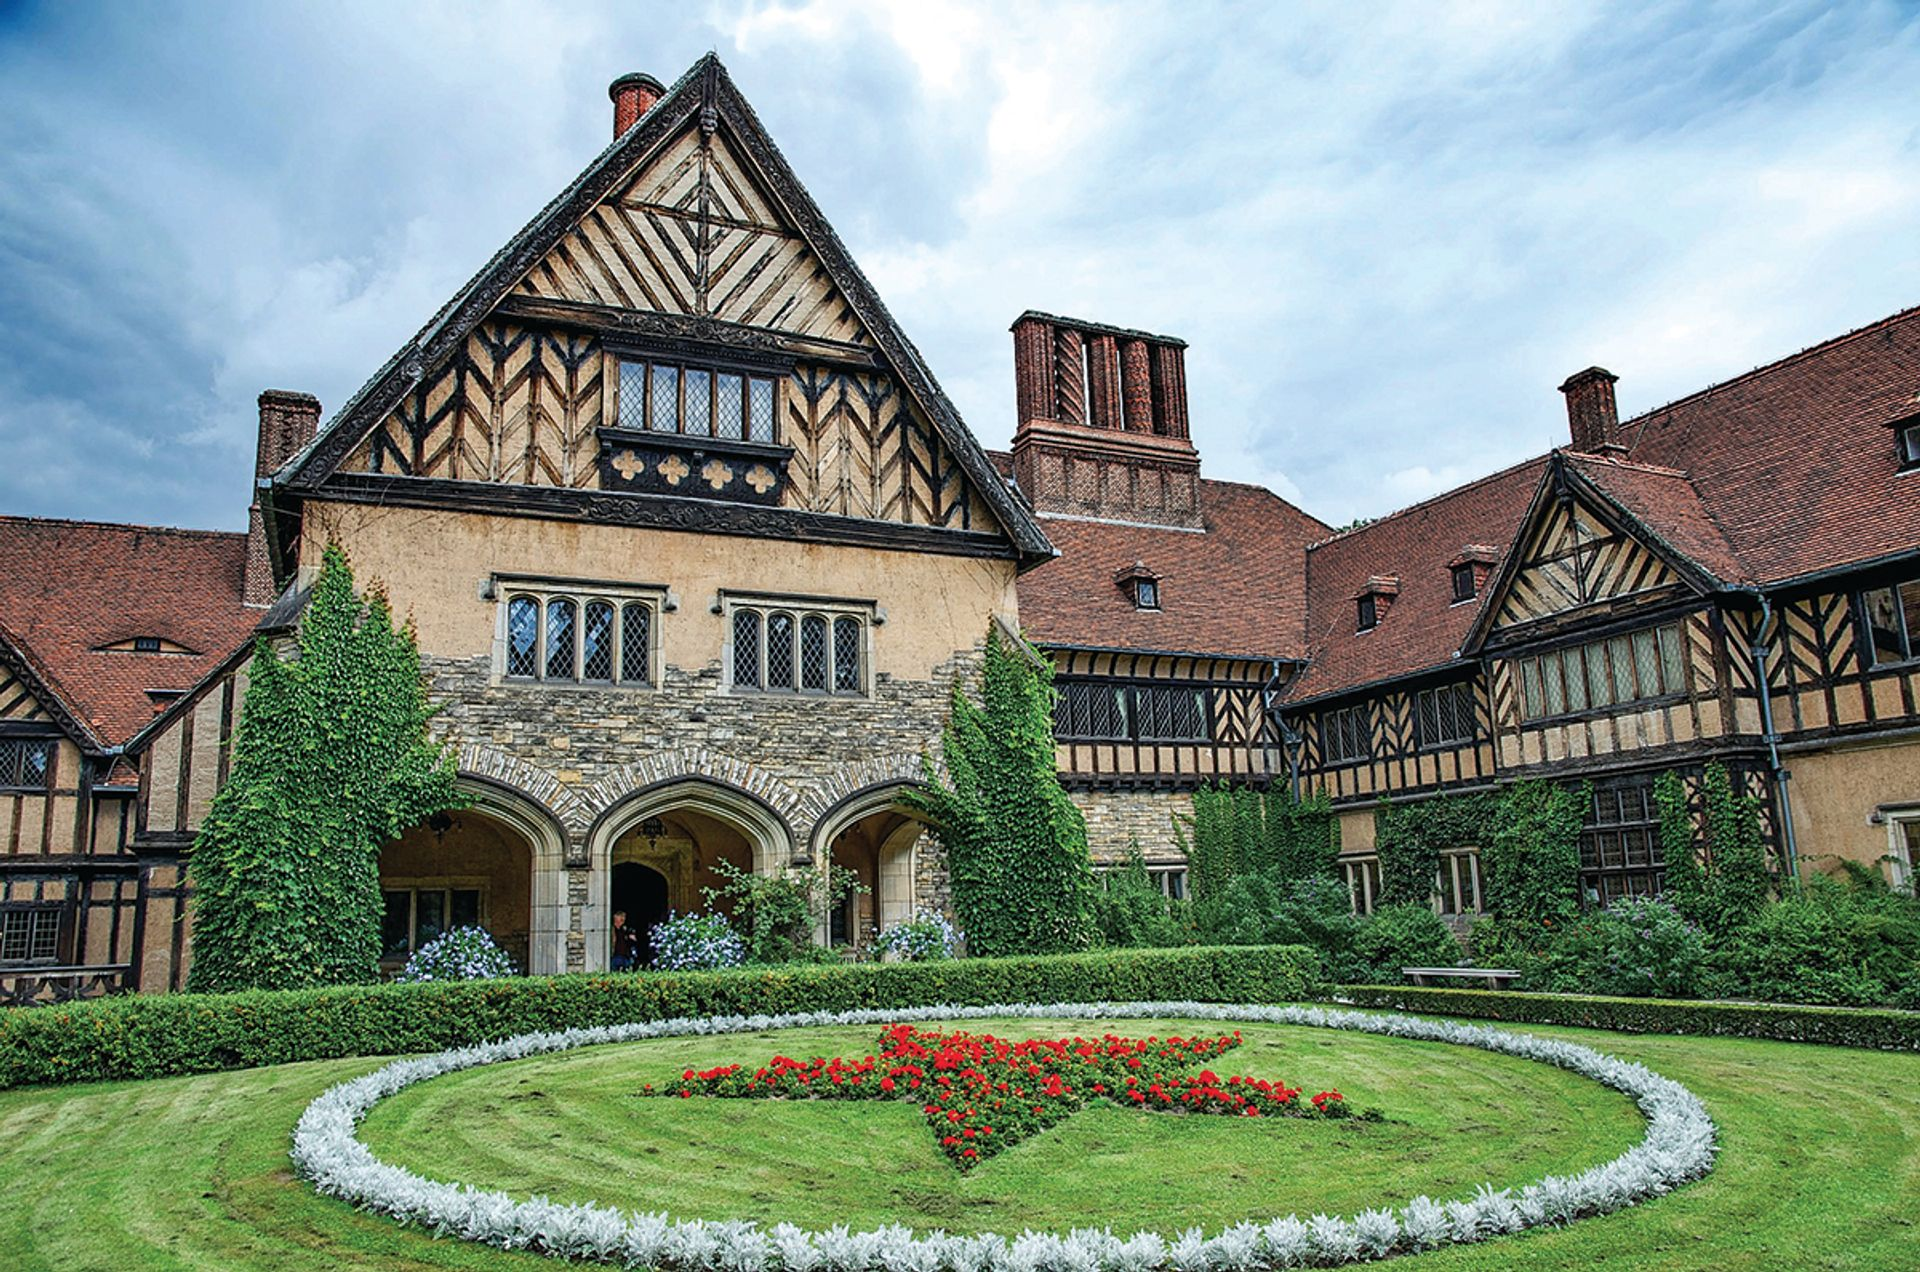 Schloss Cecilienhof, the location of the 1945 Potsdam conference attended by Winston Churchill, Harry Truman and Joseph Stalin © ernstol